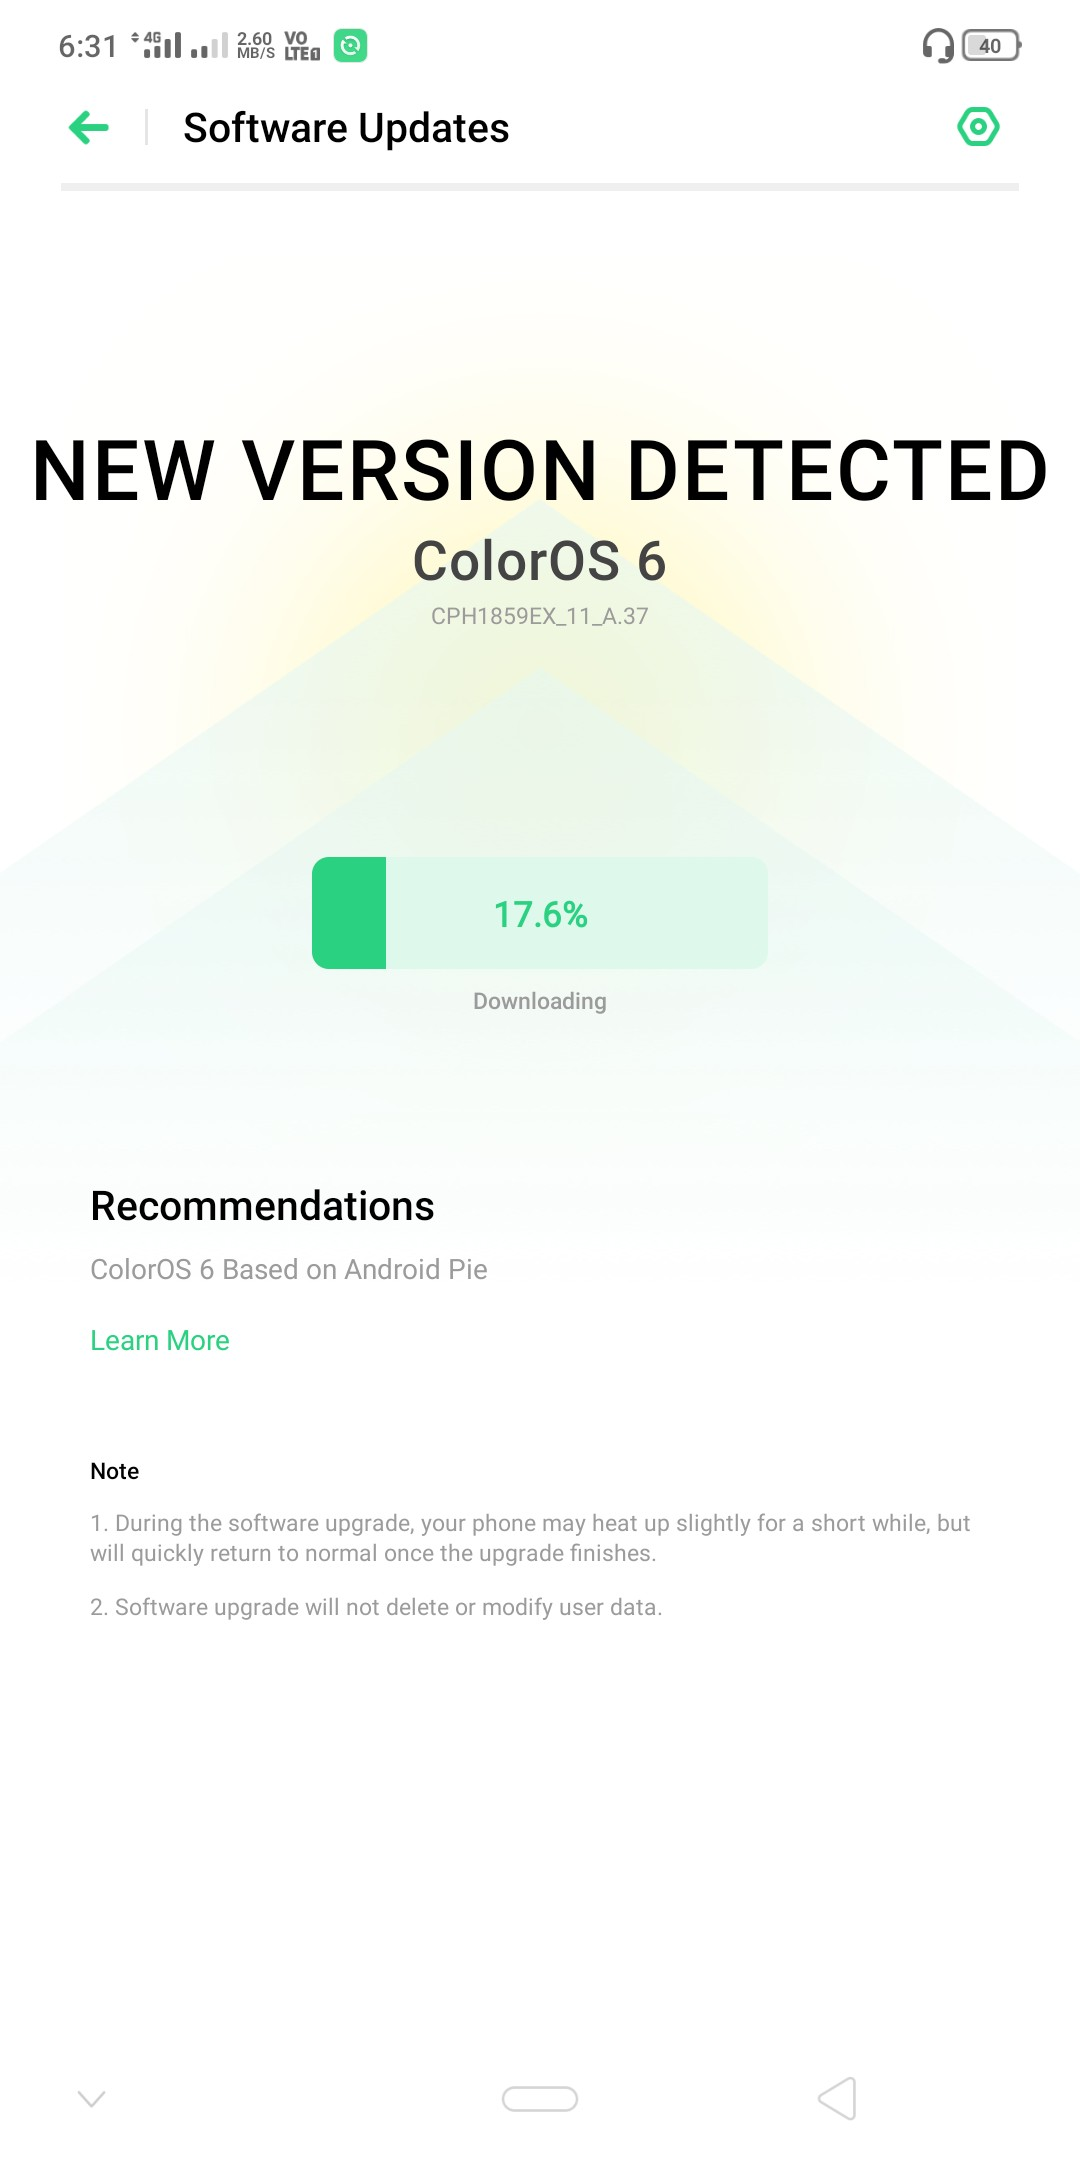 Realme 1 and Realme U1 Android Pie ColorOS 6 stable update